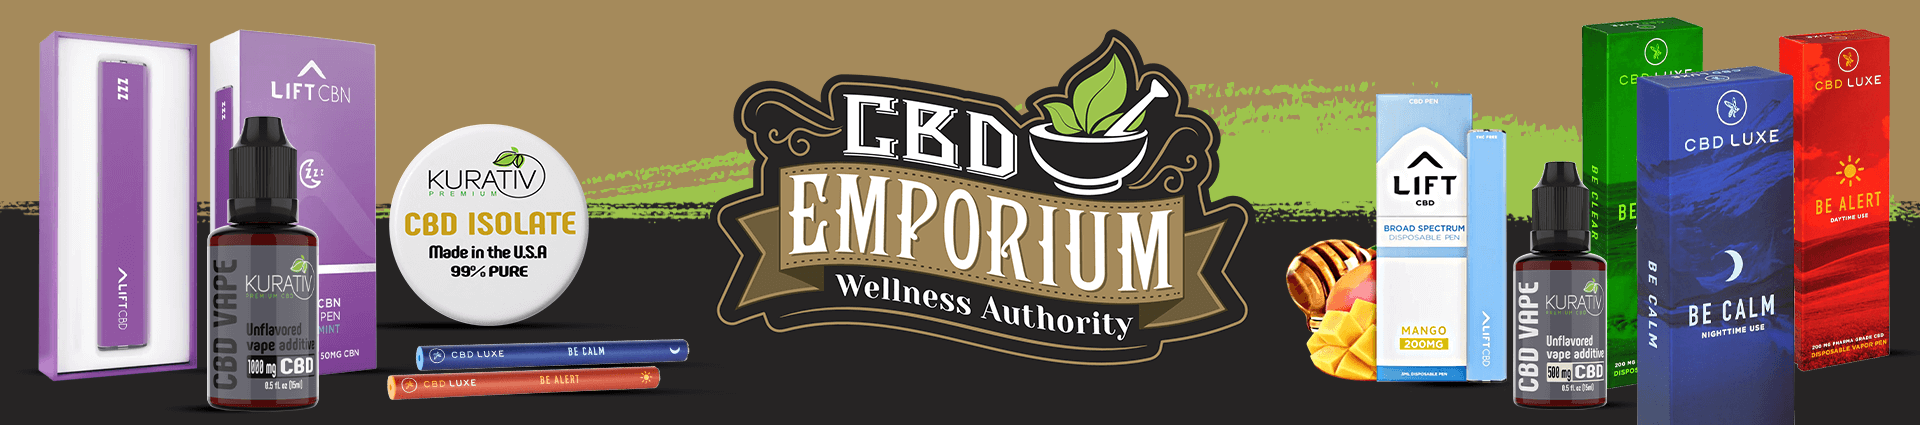 CBD Vapes, CBD Vaporizers and CBD Vape Additives from CBD Emporium